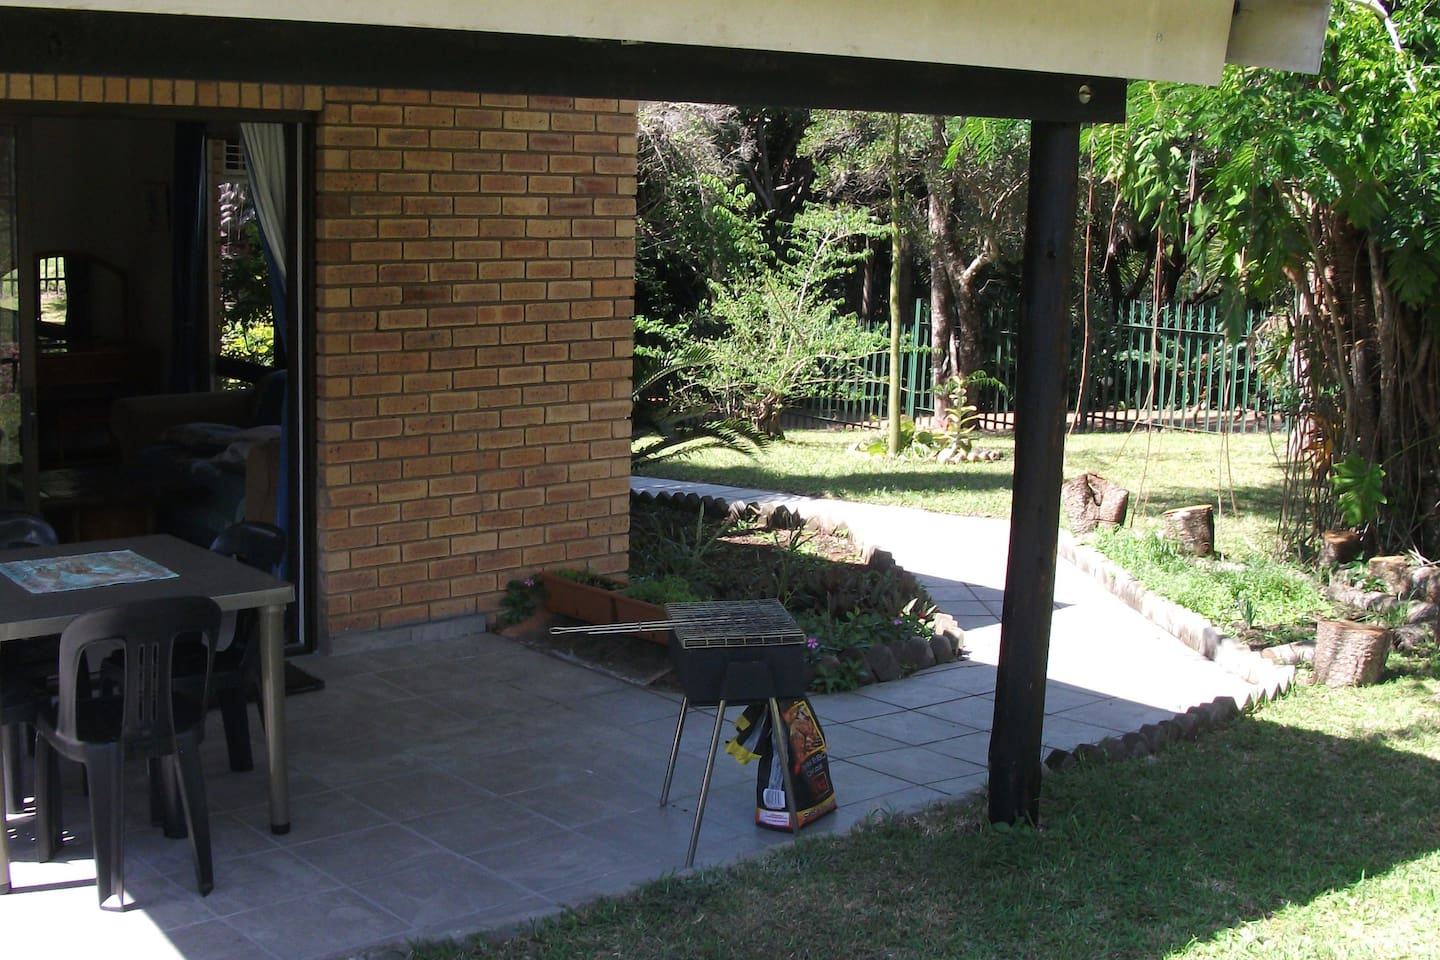 Entrance on Covered Patio with Furniture and BBQ Stand.